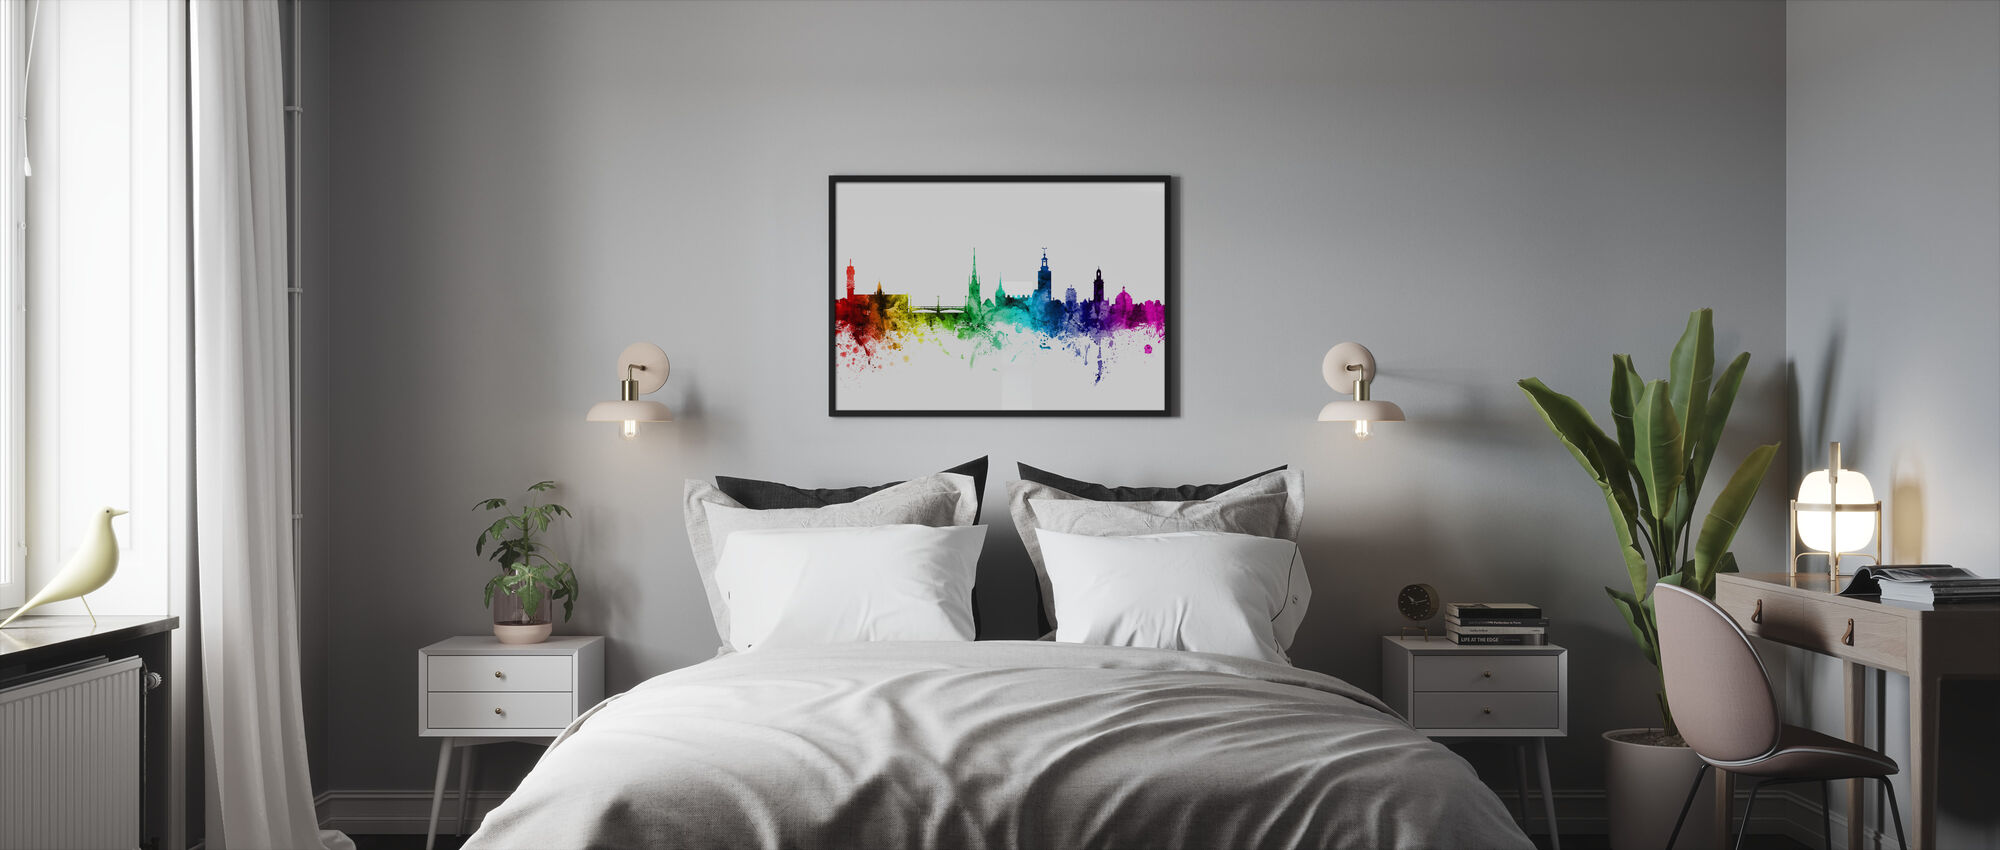 Stockholm Skyline Rainbow - Framed print - Bedroom